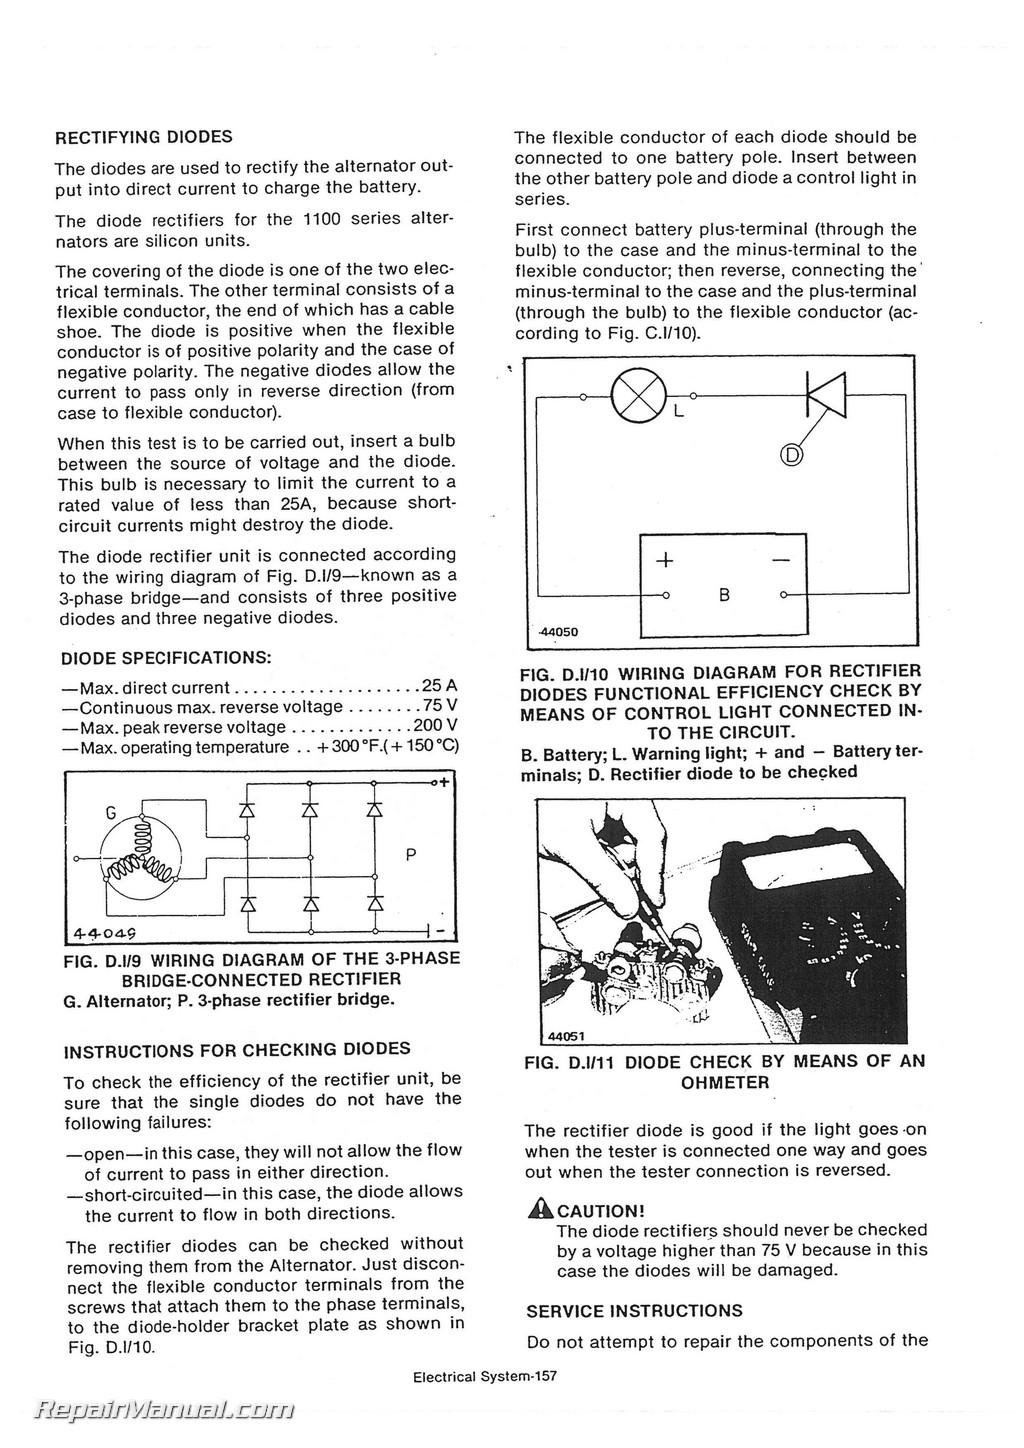 684 Tractor International Parts Diagram on case vac wiring-diagram, case tractor exhaust, case tractor schematic, case tractor radio, case 446 ignition switch diagram, case 885 tractor manual, case tractor history, case 444 wiring-diagram, case tractor parts, case ih wiring schematic, case tractor company, case ih wiring diagrams, case tractor models, tractor hydraulics diagram, case 580c backhoe parts diagram, case 4490 tractor, case ih tractors, 2290 case electrical diagram, case 580k backhoe parts diagram, case backhoe repair manual,